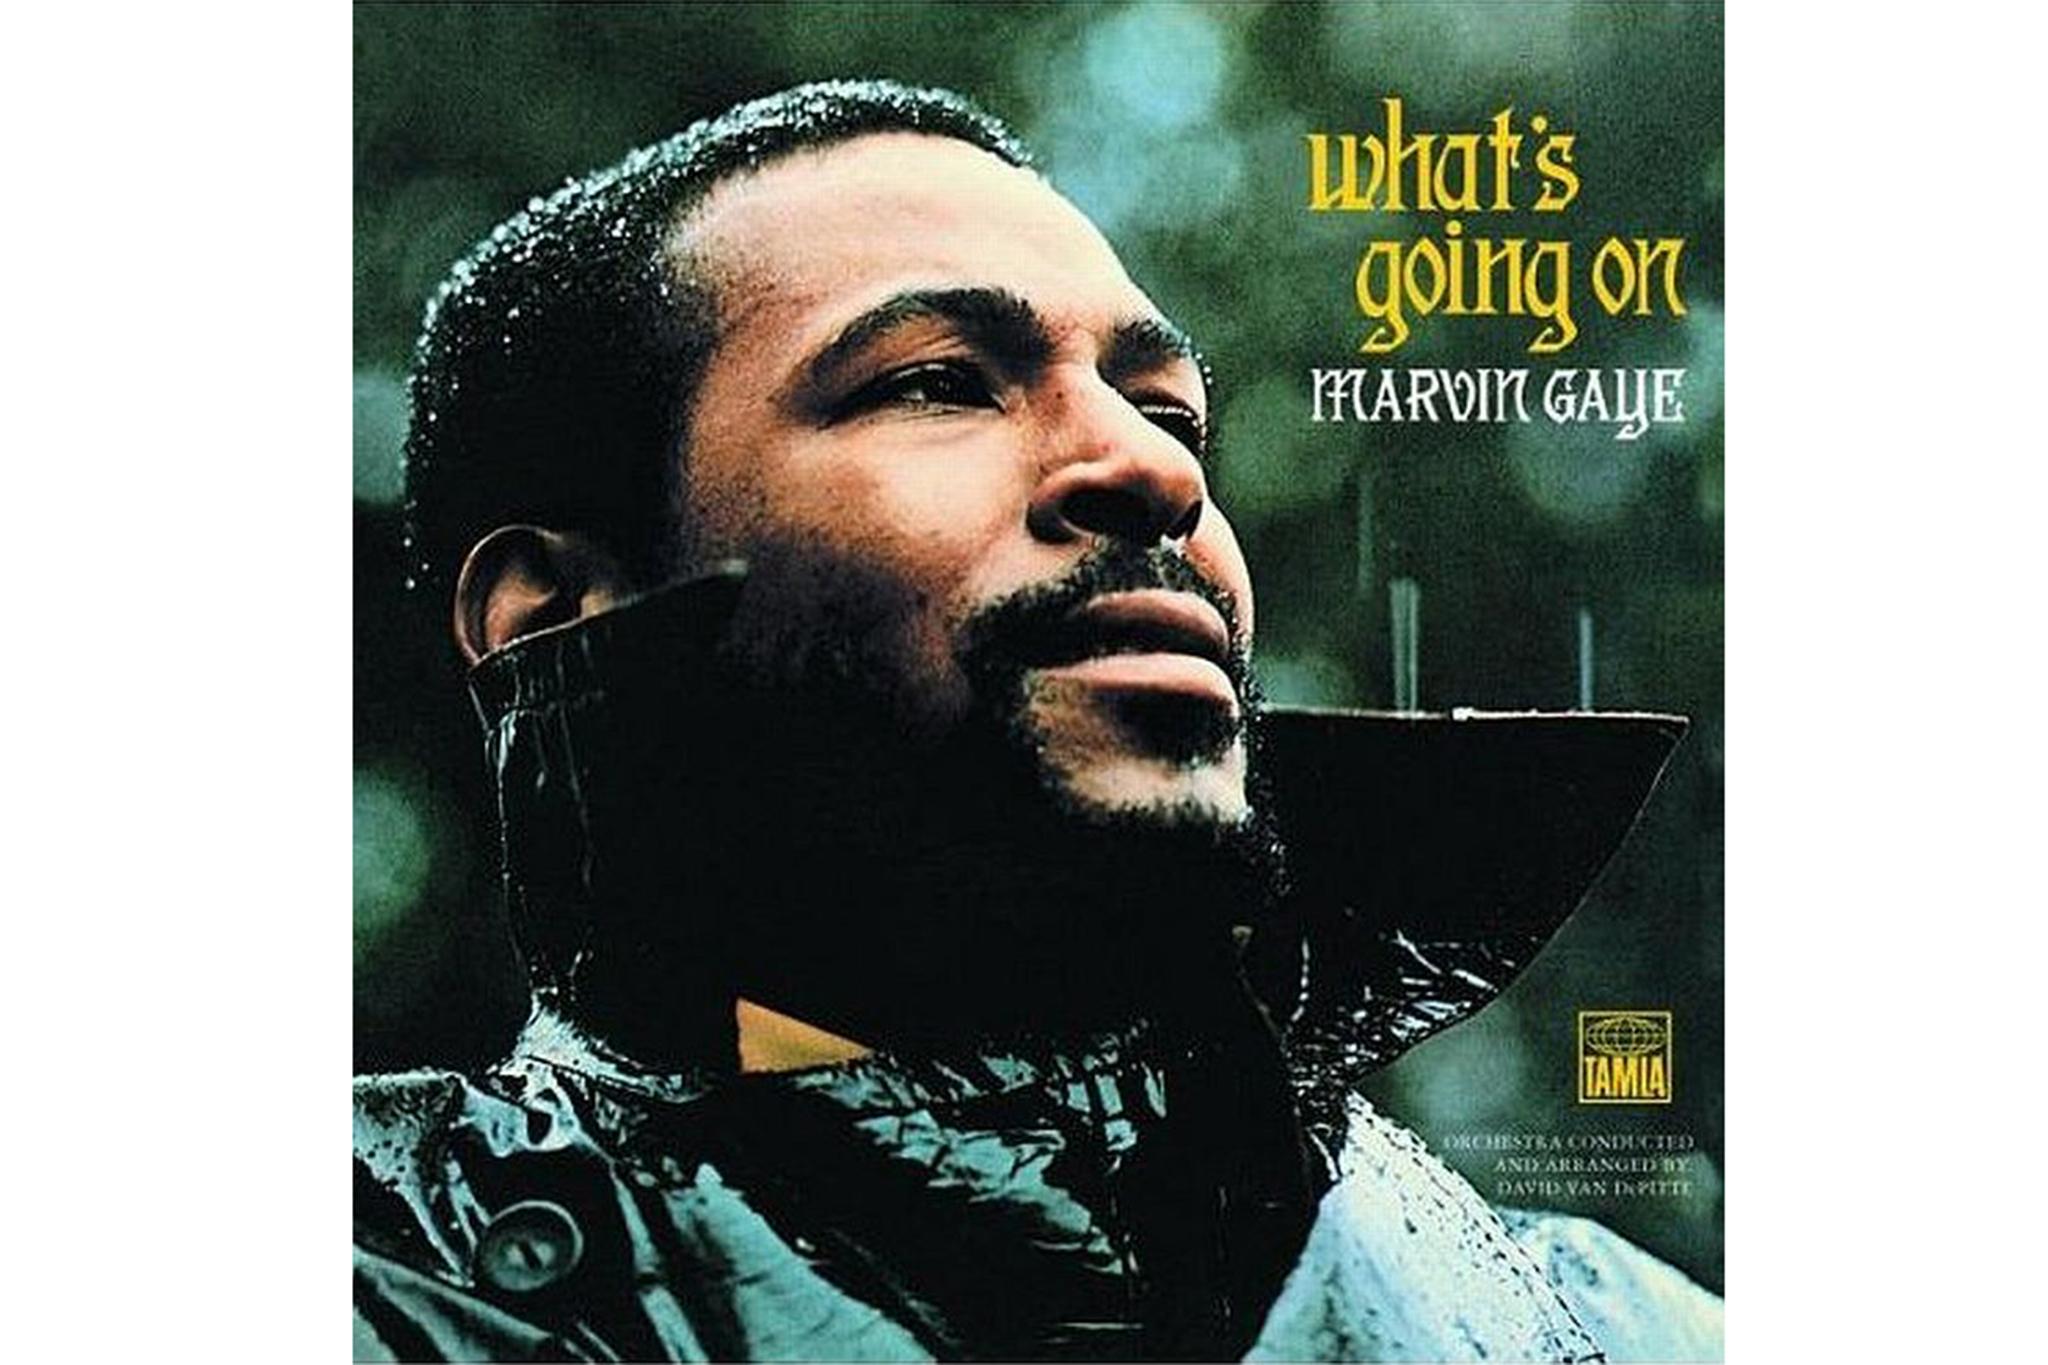 """What's Going On,"" Marvin Gaye"